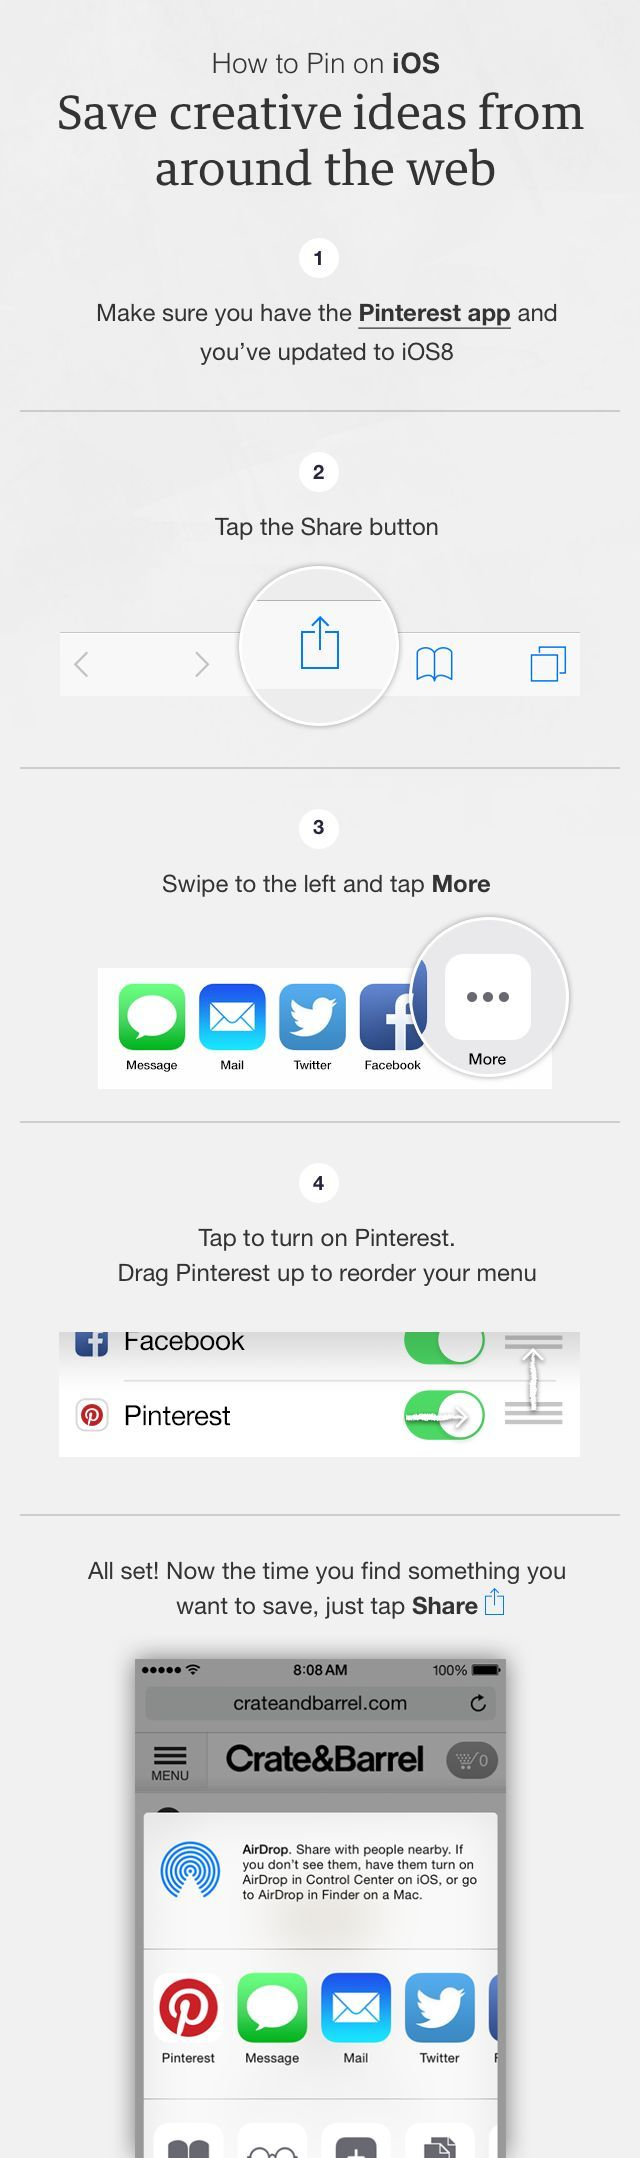 Pin Tip: Once you've added the Pin It button to your iPhone, you're just a few taps away from Pinning your newest finds. http://pin.it/TQI28FV